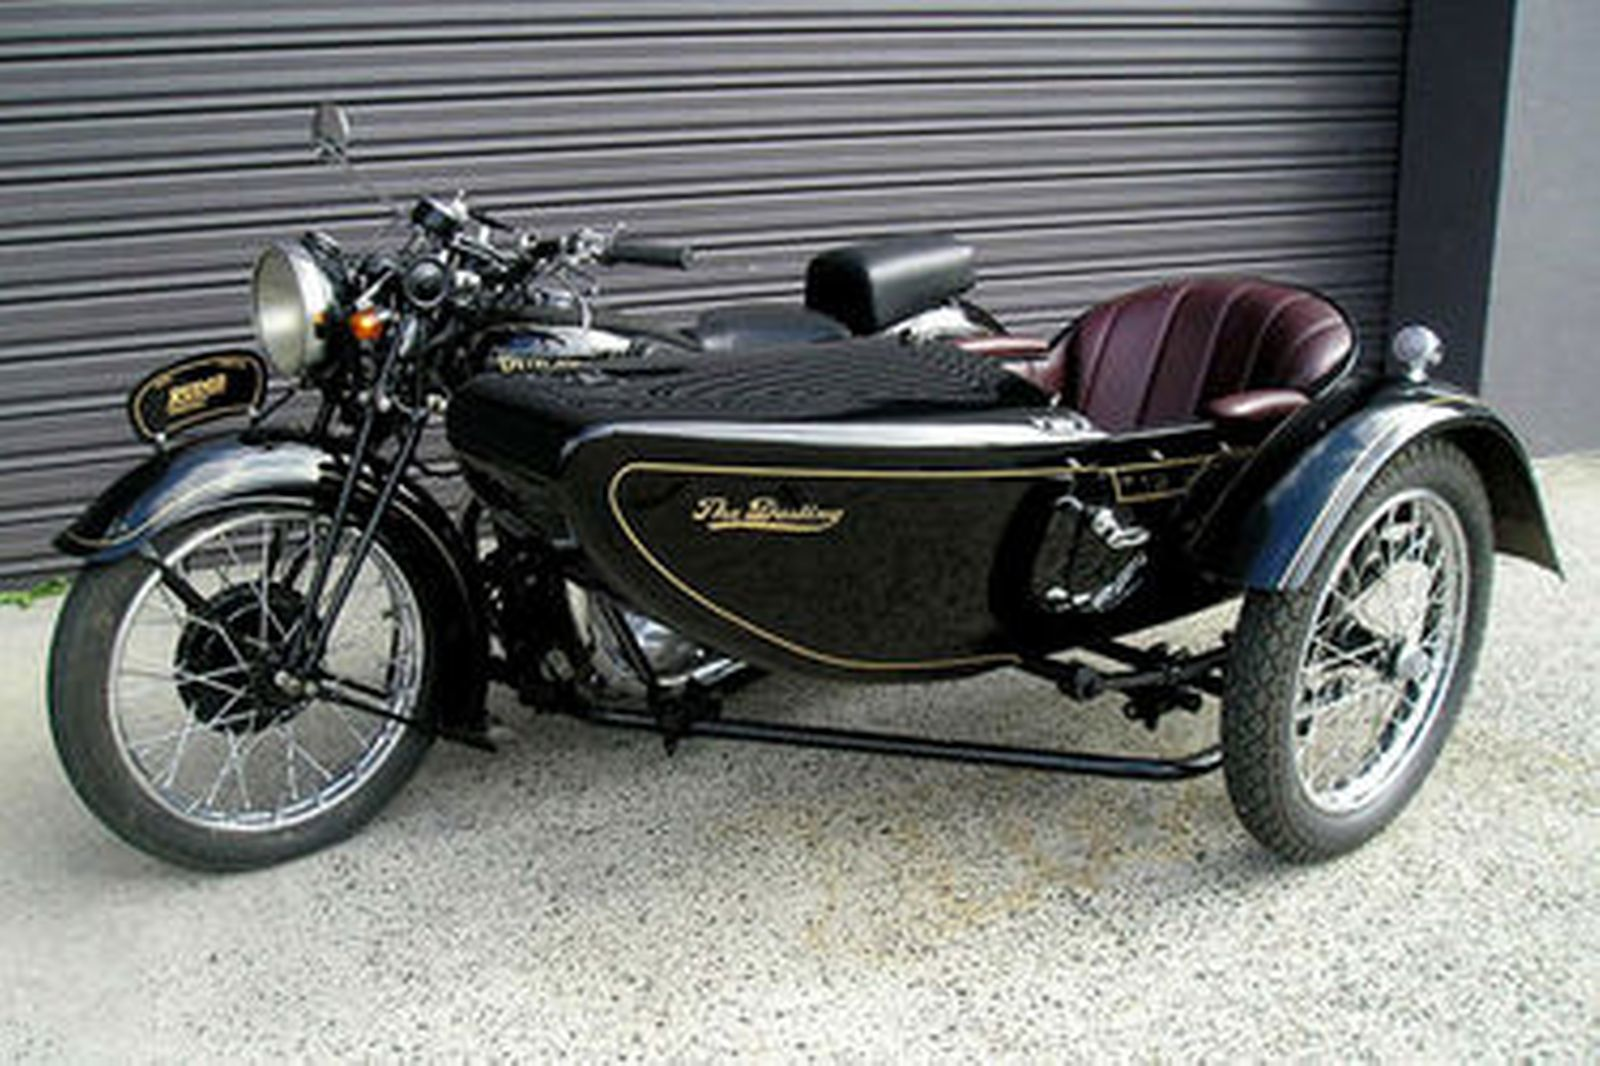 Sold: Rudge 'Special' Motorcycle with Dusting Sidecar Auctions - Lot 11 - Shannons